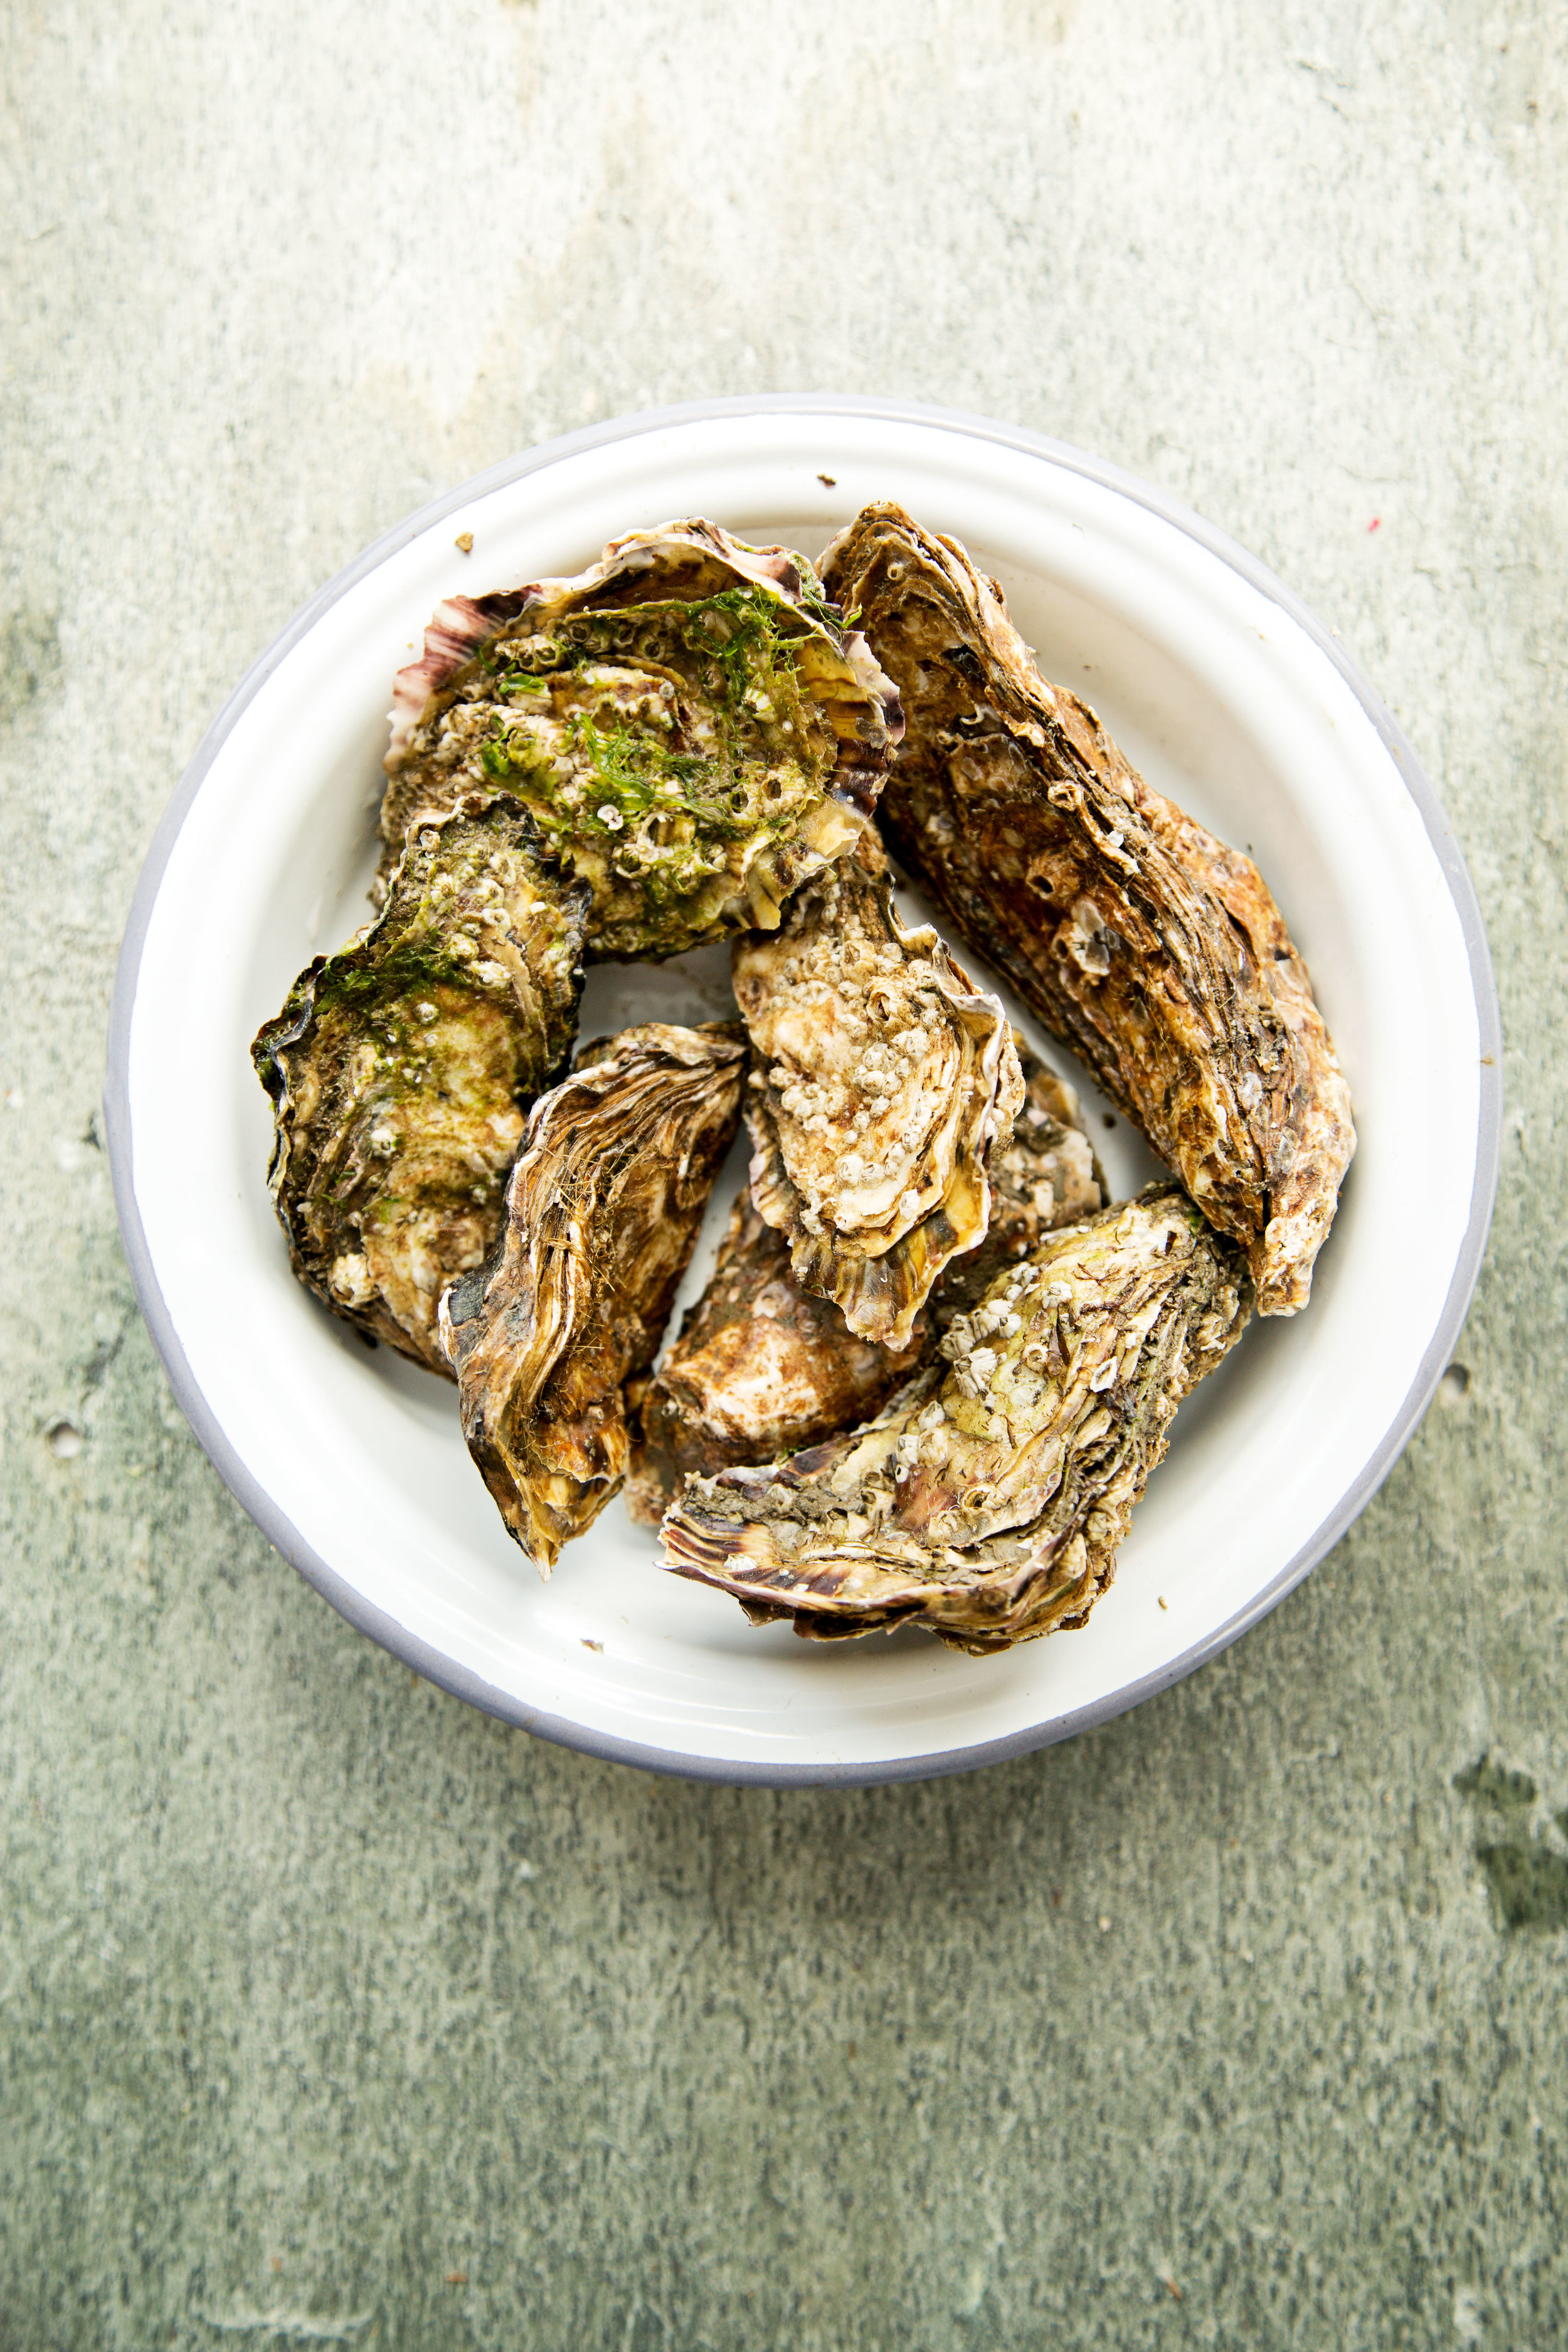 Carlingford-oysters-in-a-bowl.jpg